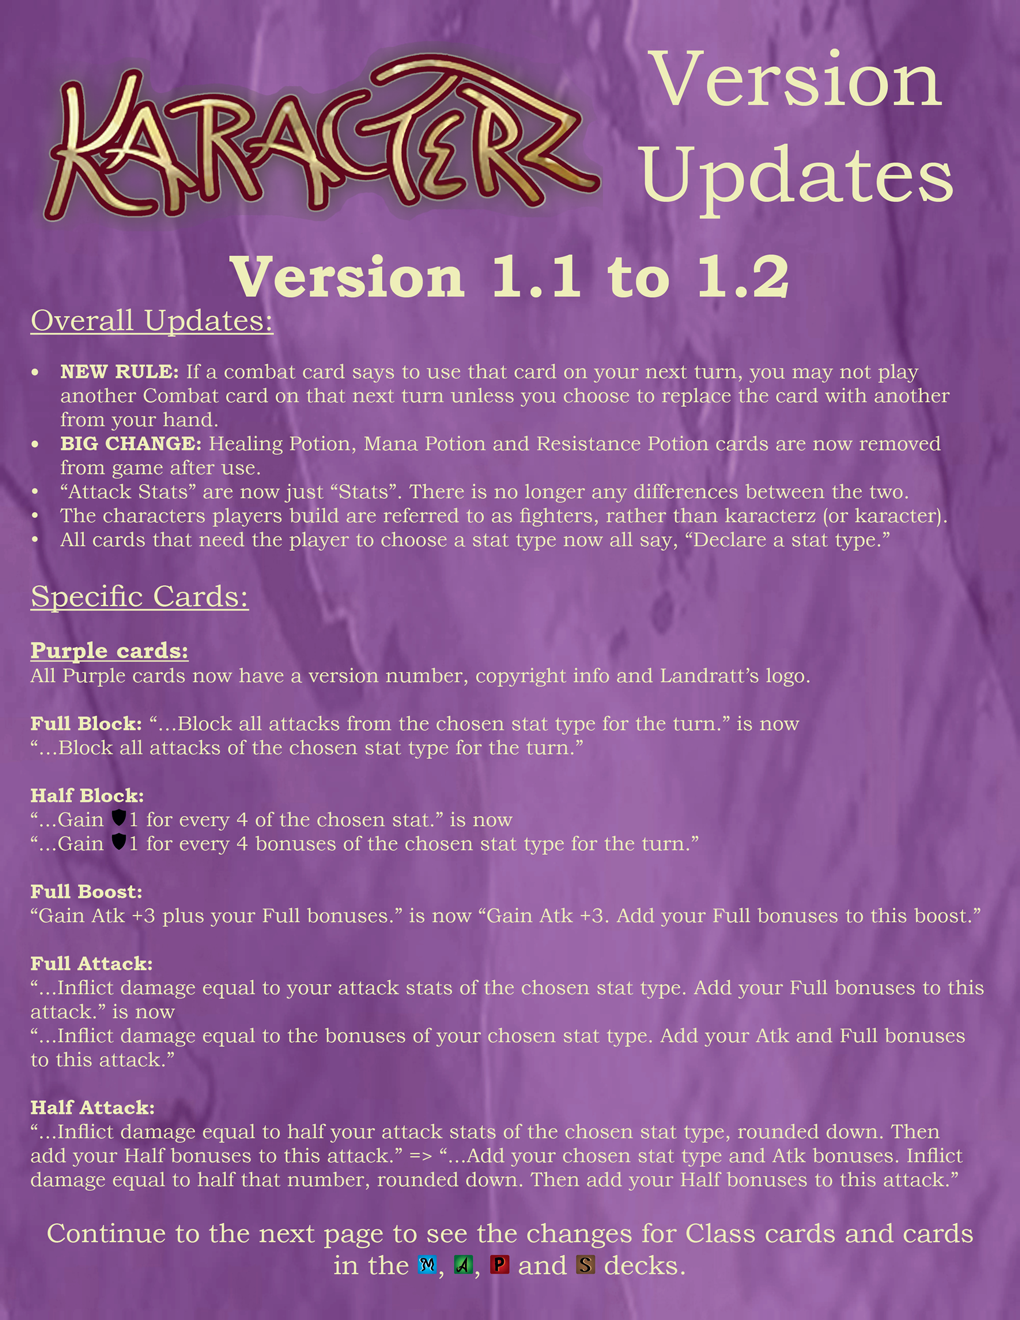 Karacterz Version 1.1 to 1.2, page 1